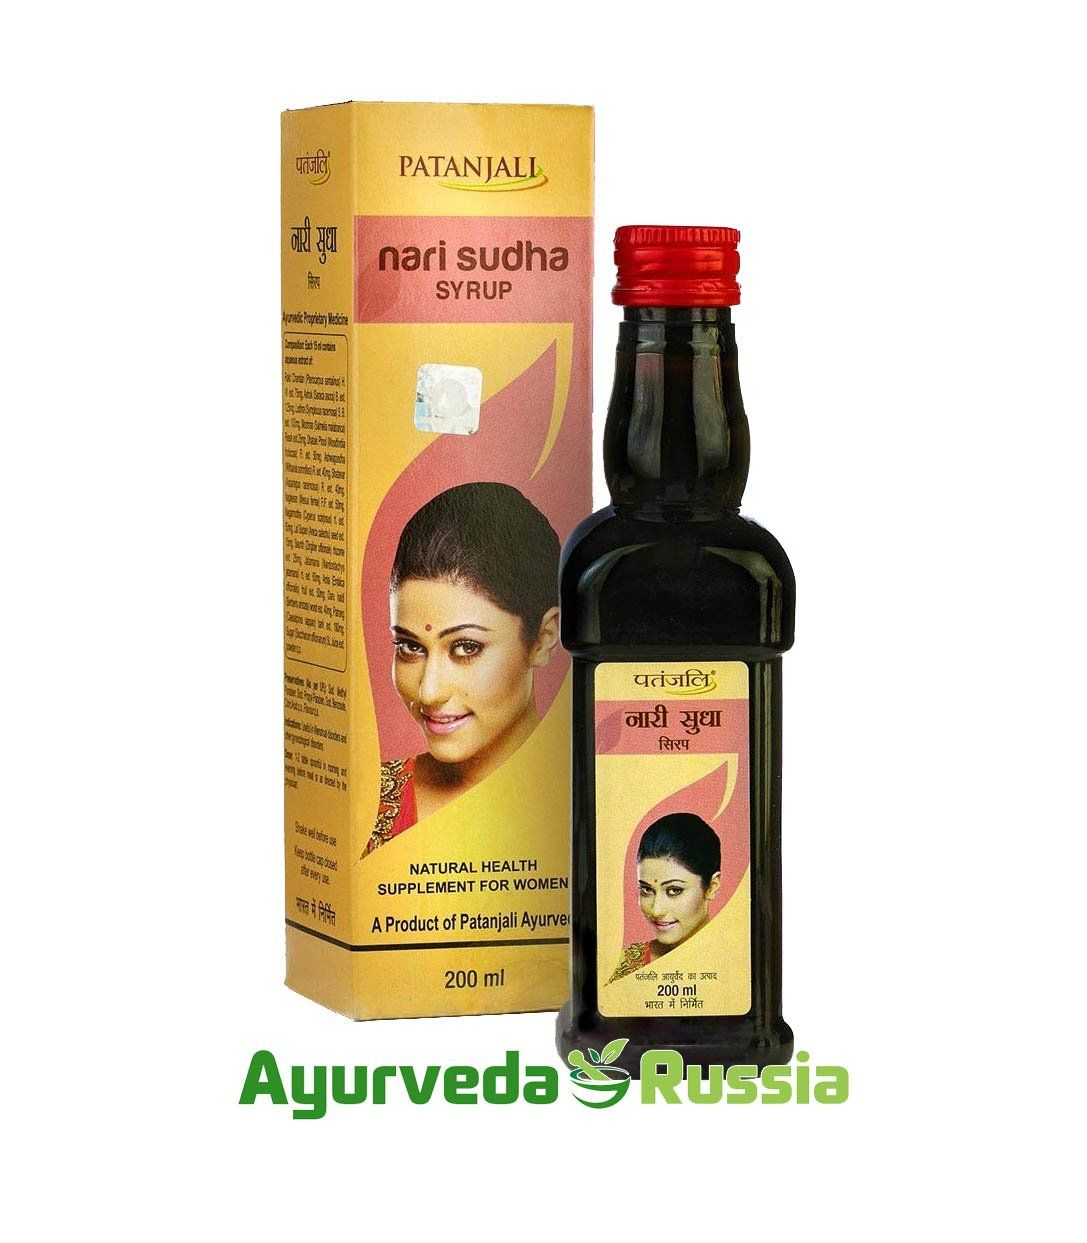 Nari Sudha Syrup Natural Health Supplement for Women Patanjali (Сироп Нари Шудха Патанджали) 200мл